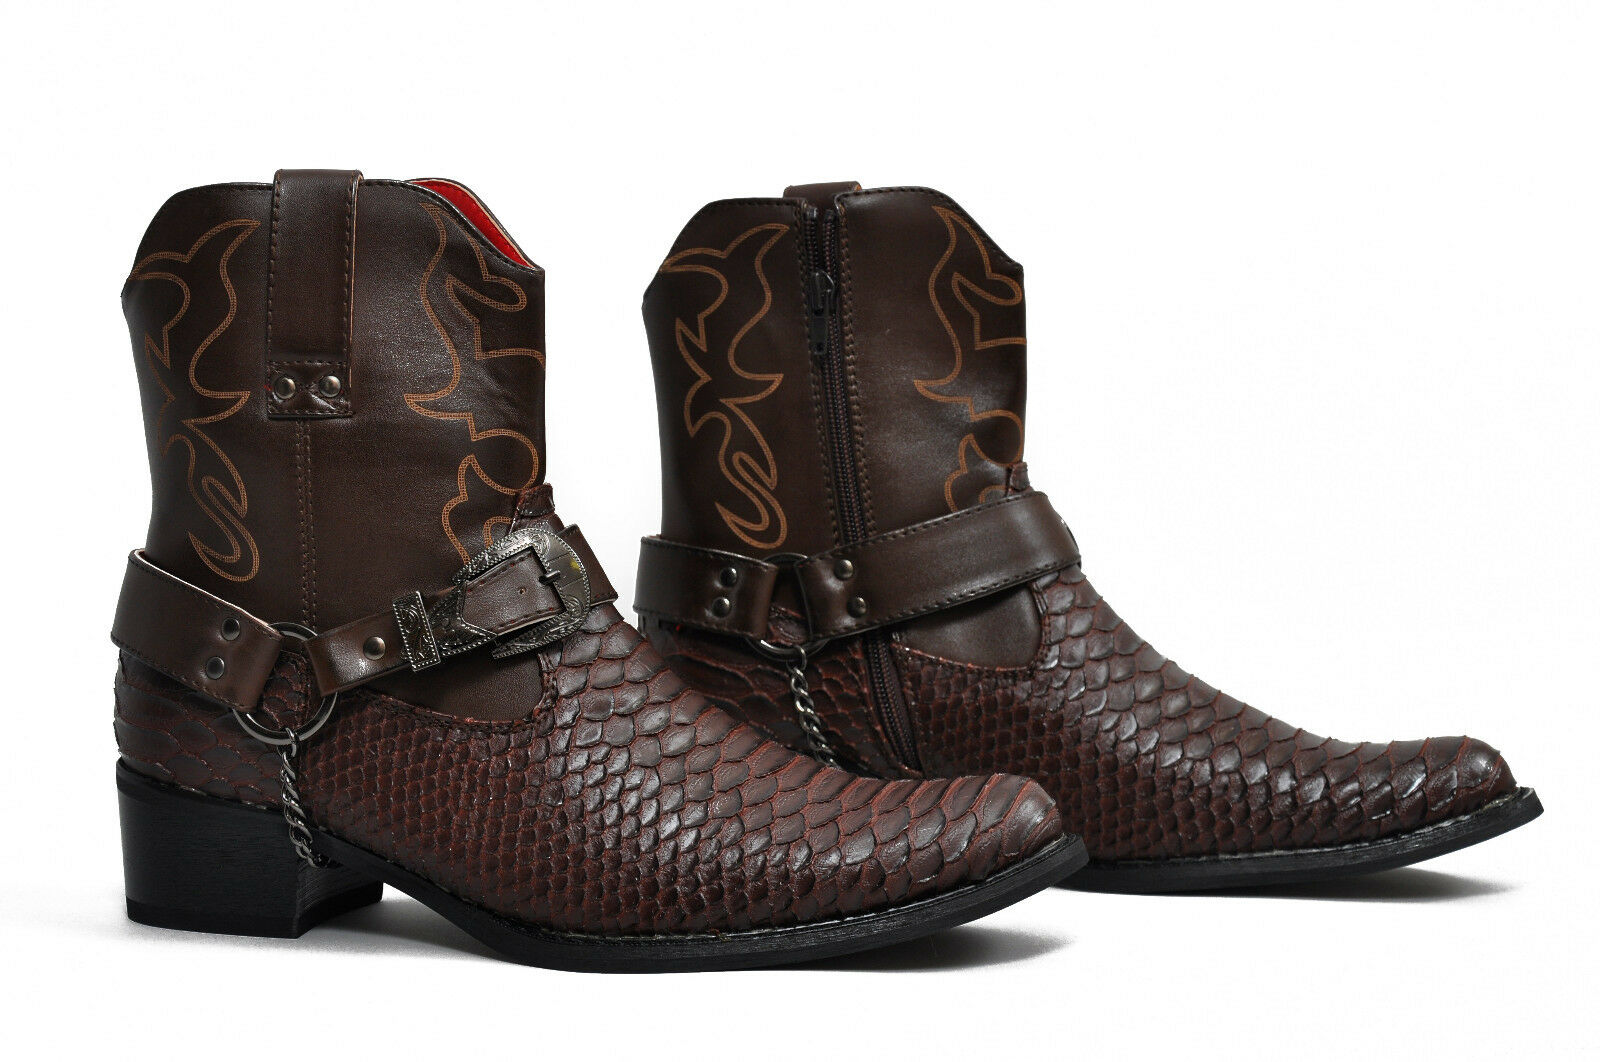 Mens Gents Western Style Snake Skin Cowboys Ankle Boots Colour Brown Size 8